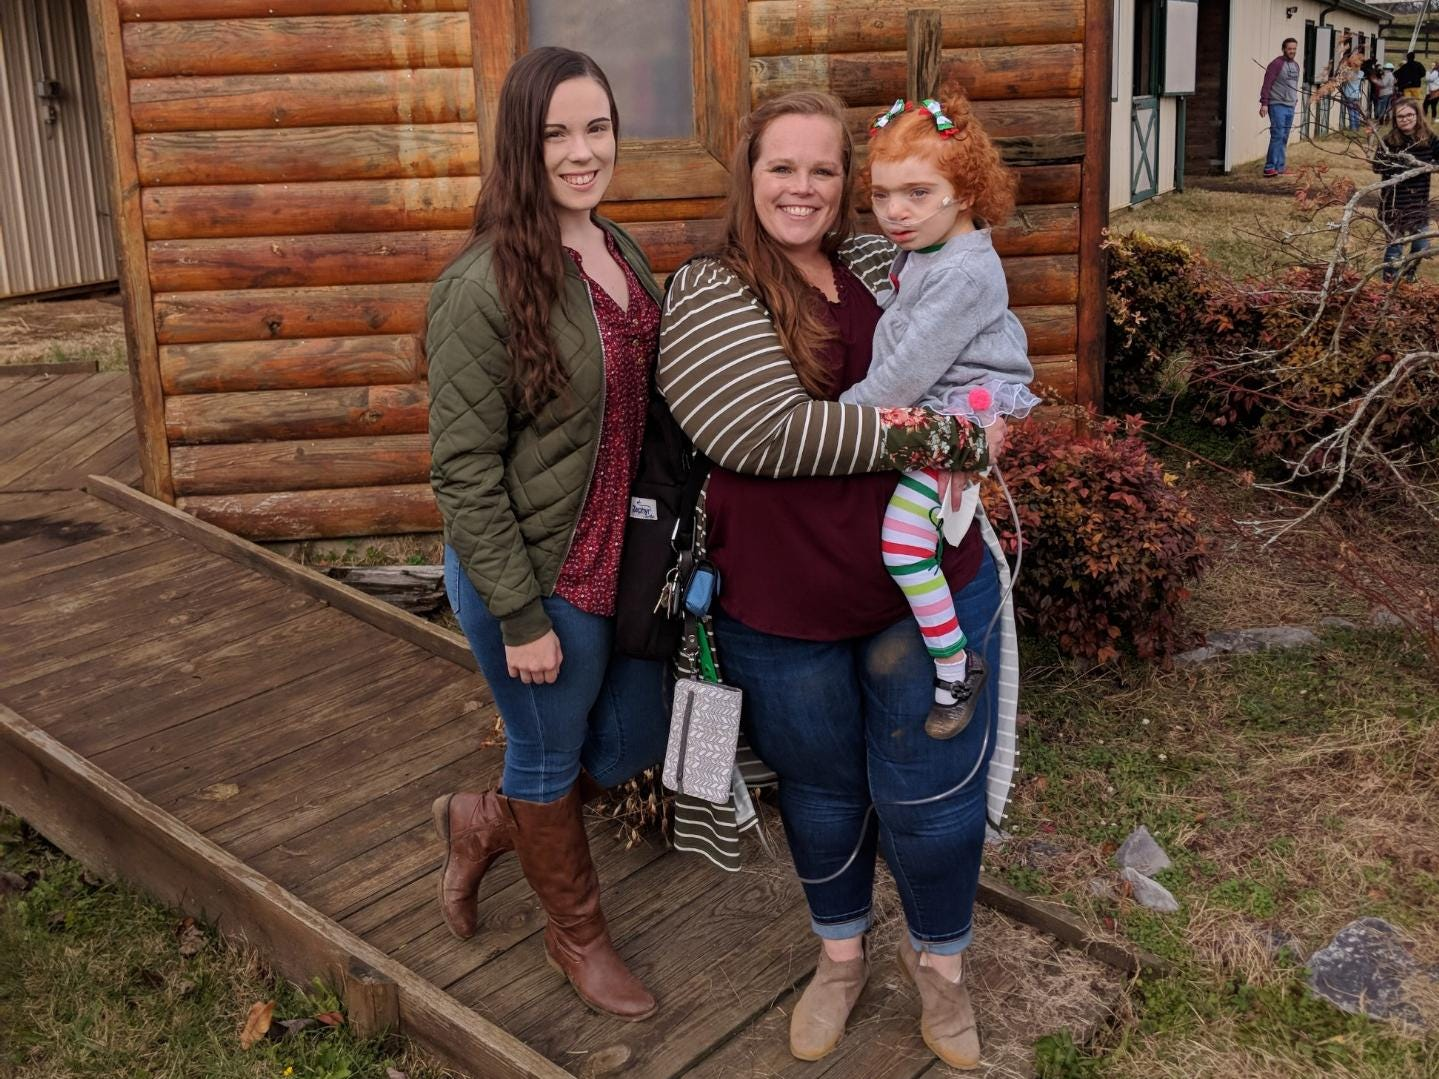 Tatum Gross, mom Michelle Gross and 6-year-old Asher Gross at the Small Miracles Therapeutic Horseback Center on Nov 25, 2018. Asher was born with severe disabilities, and Michelle, a single mom living in Jonesborough, Tenn., struggles financially to support her family and pay for the significant medical bills associated with her younger daughter's care.  Michelle Gross is advocating for a Medicaid pathway for children in Tennessee with severe disabilities living at home with their families.